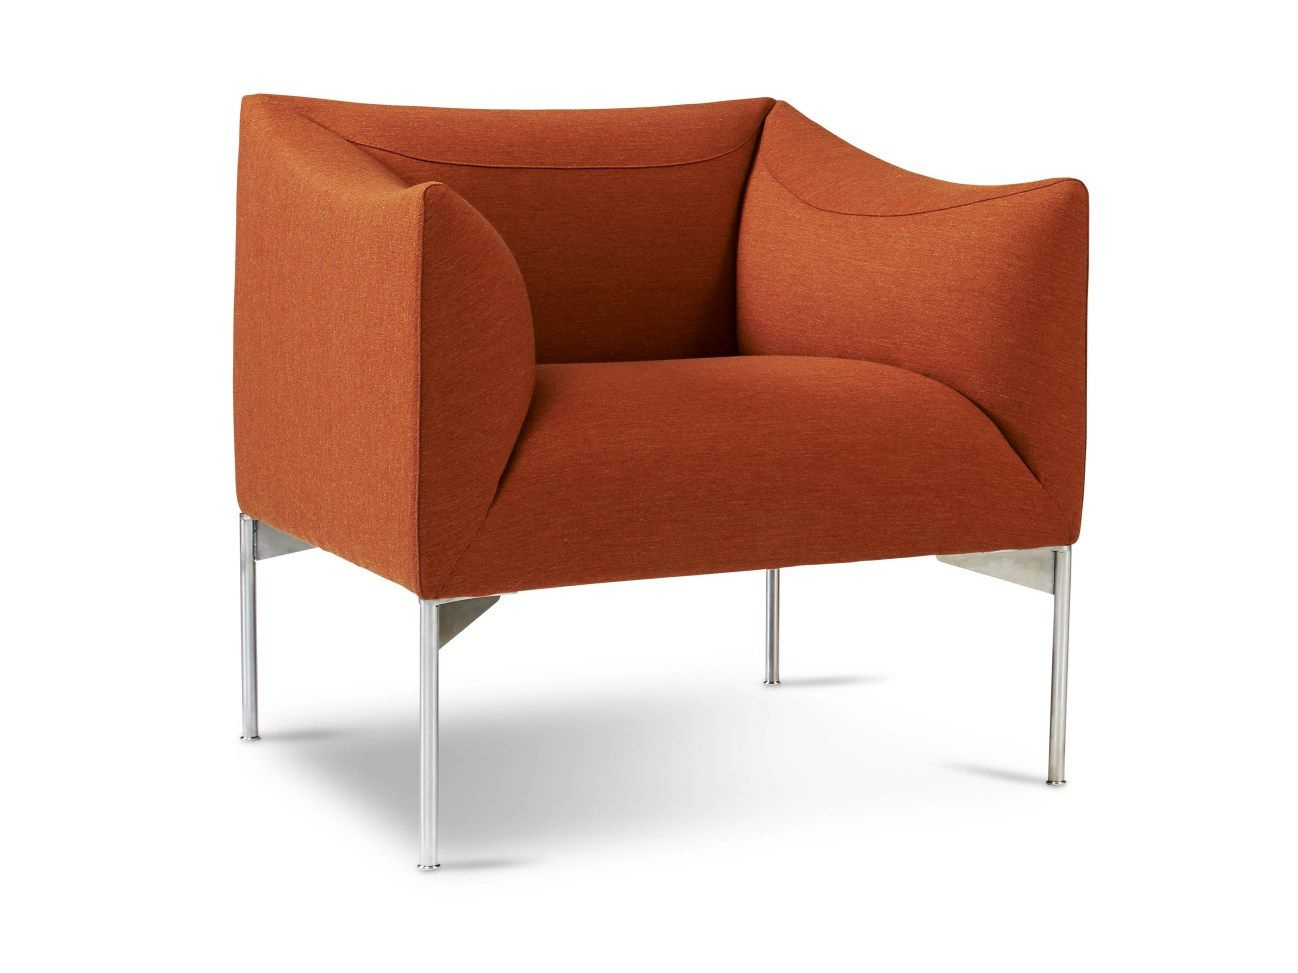 UPHOLSTERED ARMCHAIR WITH ARMRESTS BOW BOW COLLECTION BY ERIK JØRGENSEN | DESIGN TORBJØRN ANDERSSEN, ESPEN VOLL